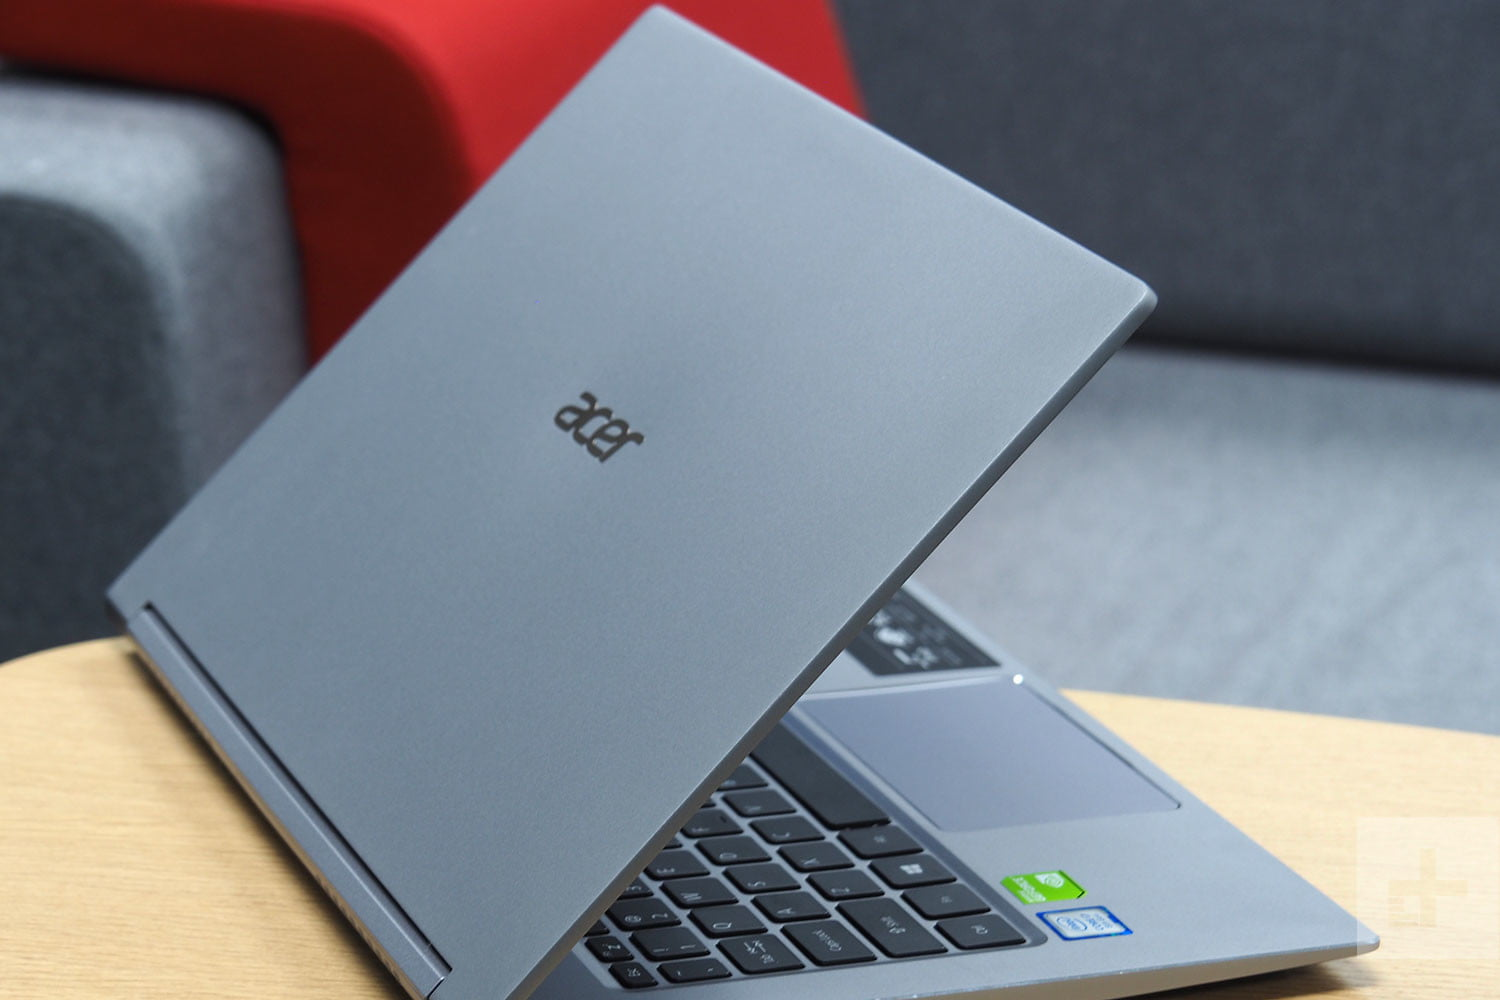 Acer Swift 3 vs Asus ZenBook 14: Which Is A Better Choice?